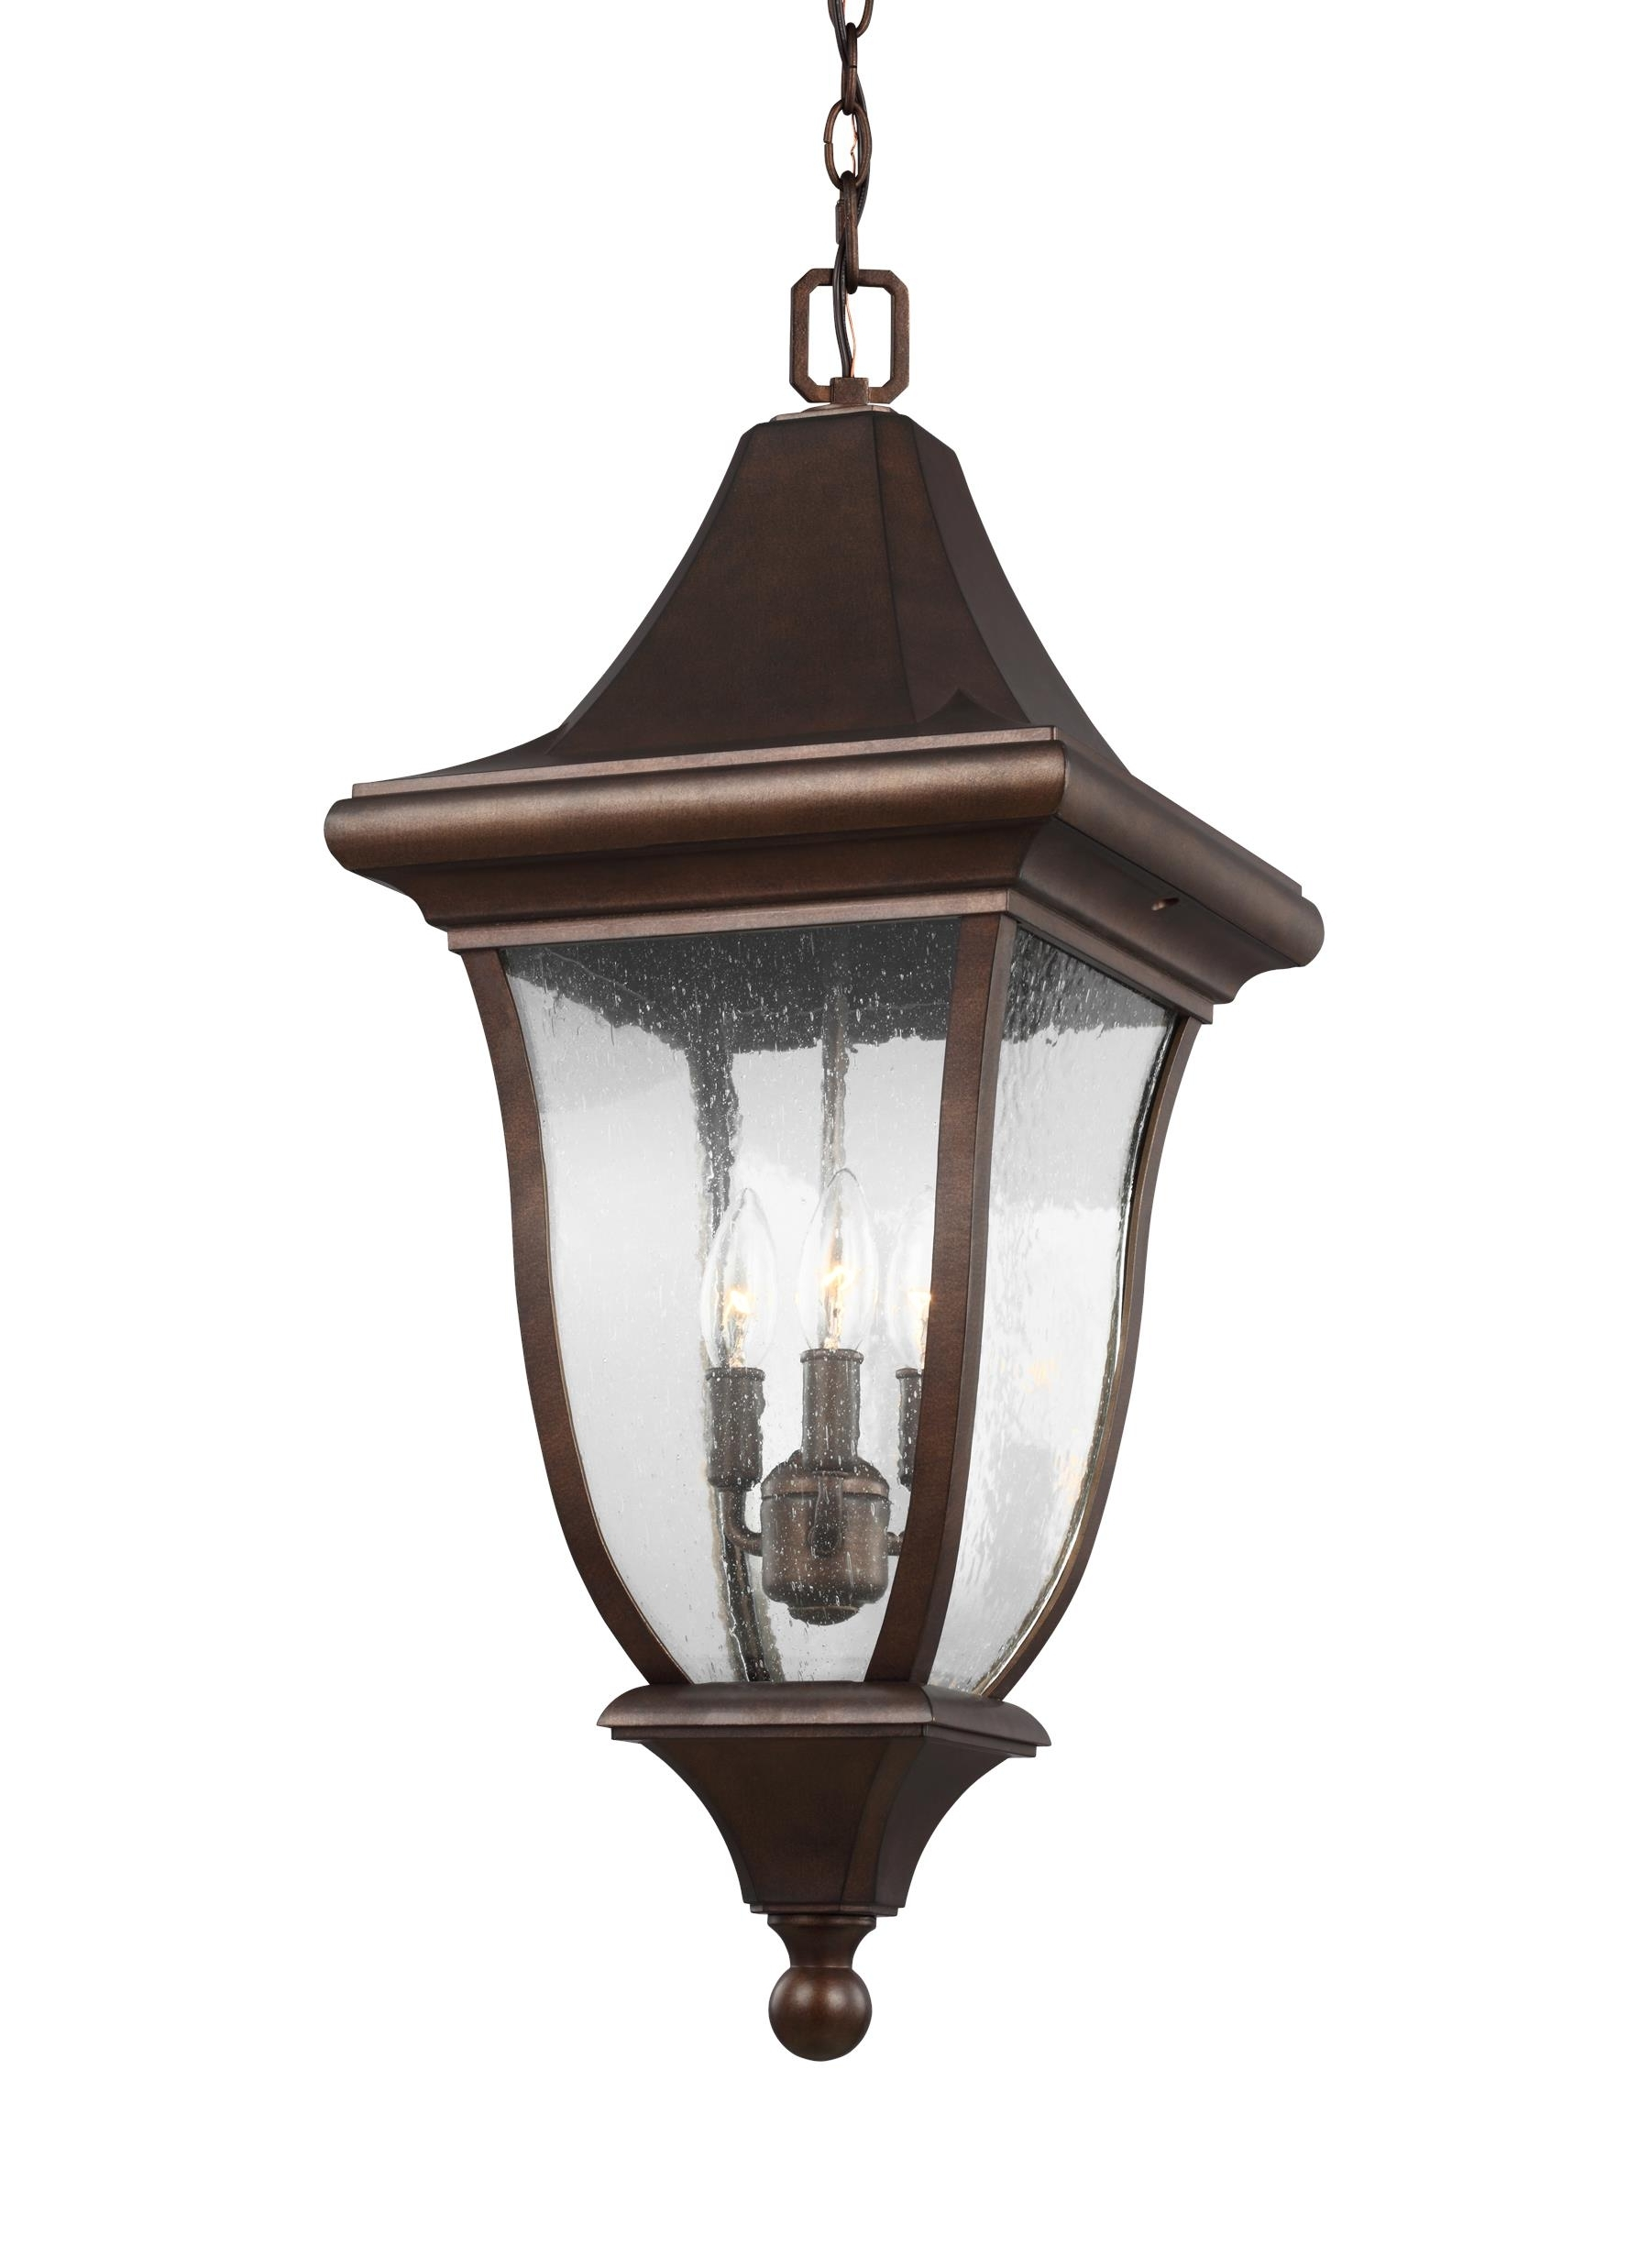 Ol13109ptbz,3 – Light Outdoor Pendant Lantern,patina Bronze Pertaining To Latest Lamps Plus Outdoor Hanging Lights (View 8 of 20)